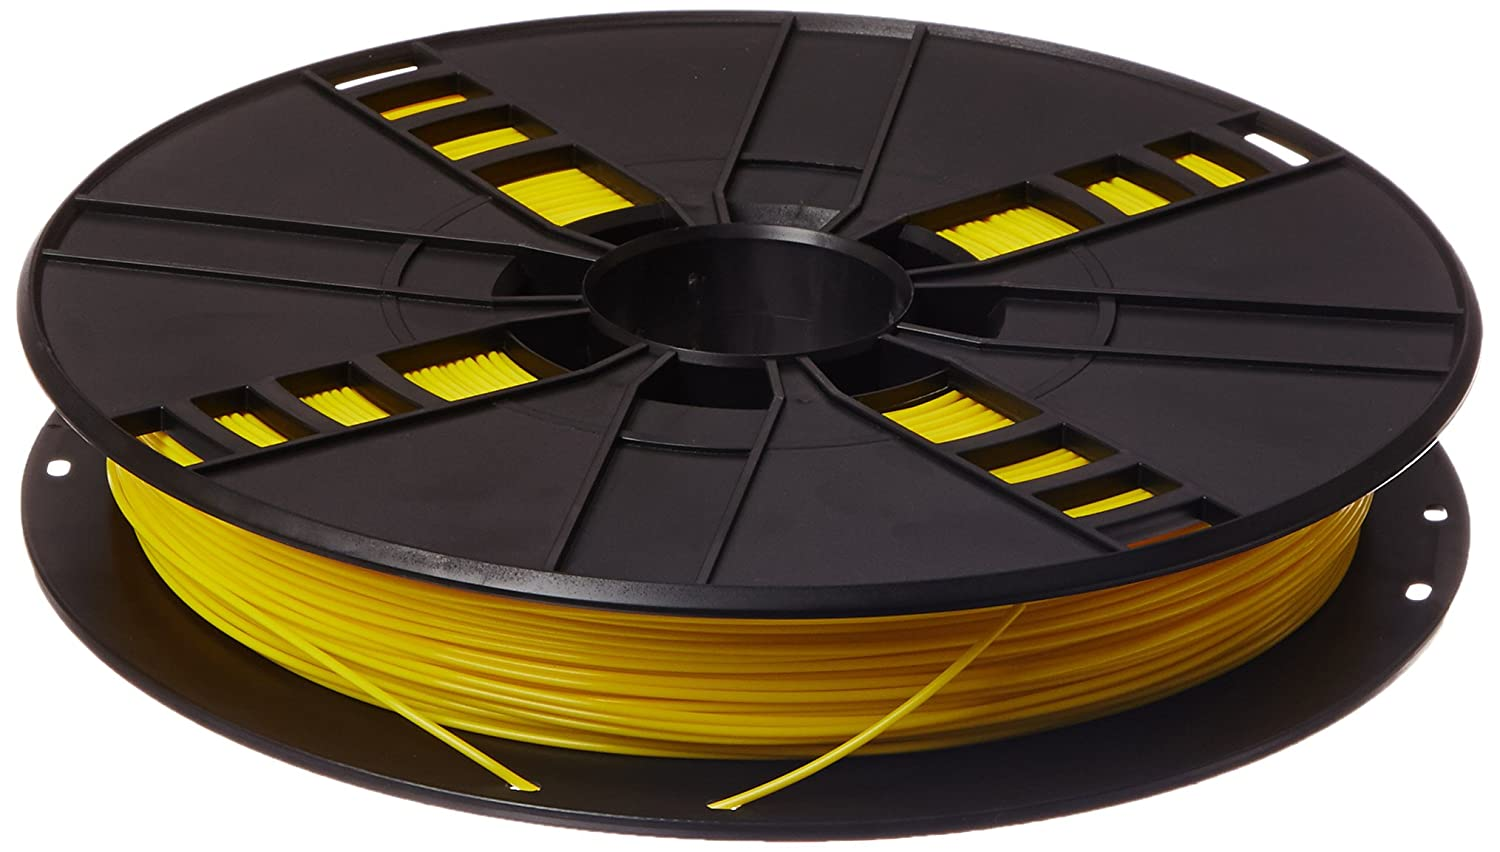 MakerBot MP05781 Plastik Spool, PLA, 9 kg, 1,75 mm, True Gelb B00SNM1O52 Filament-3D-Druckmaterialien